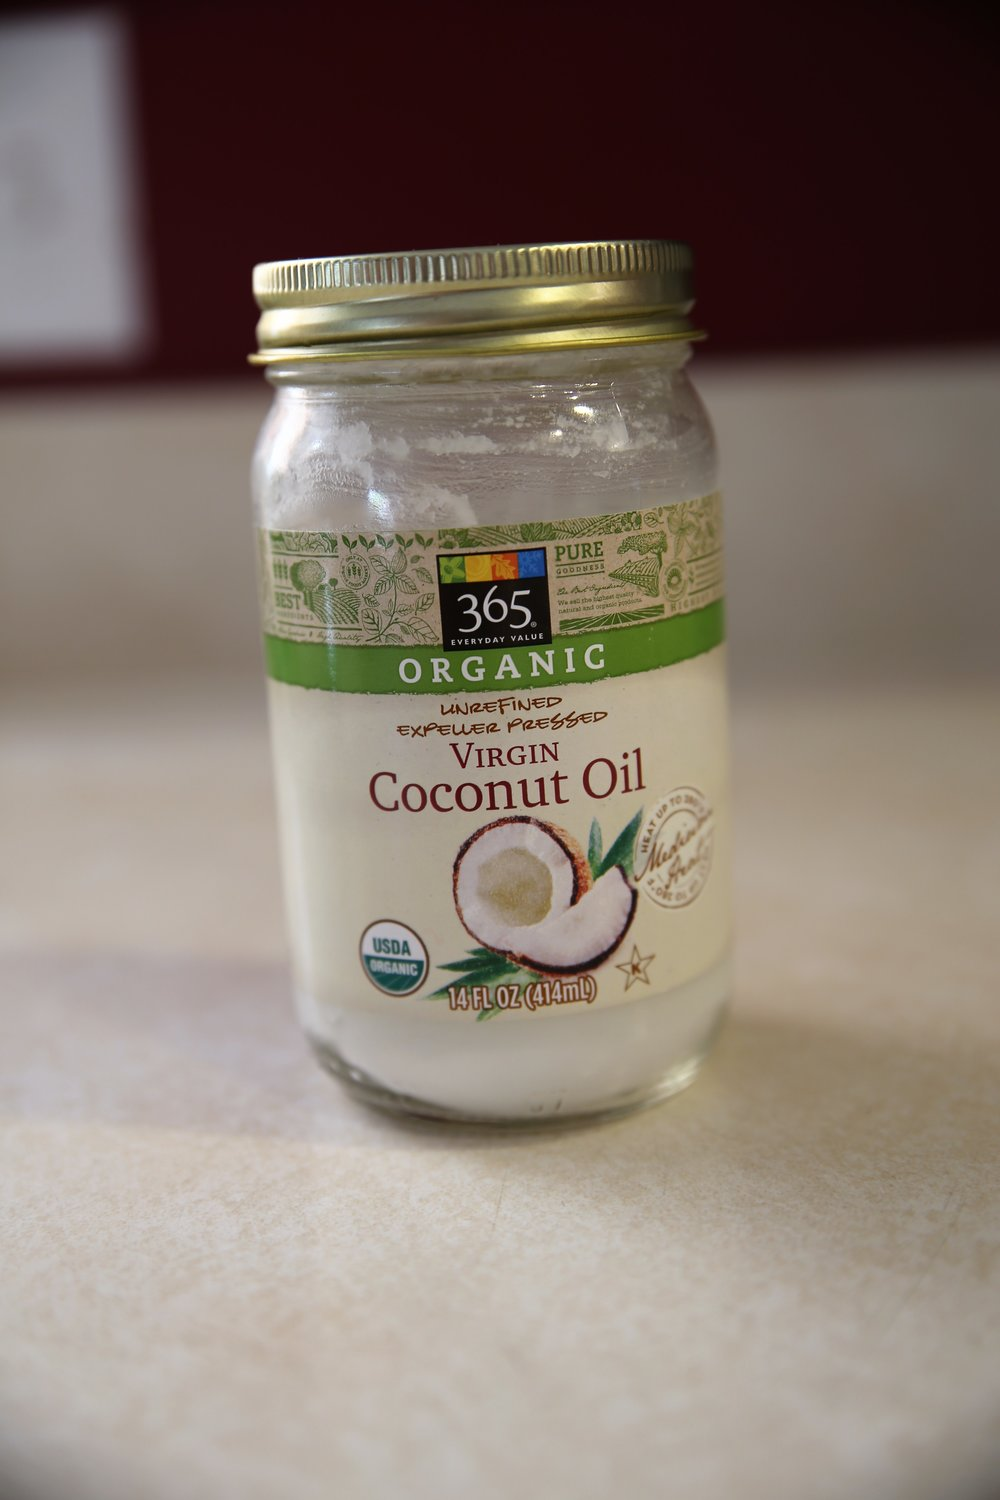 High-heat safe, nutrient dense, 1:1 - 3 amazing qualities found in coconut oil. If you're not a fan of the coconutty taste of coconut products, you may be surprised how that flavor is eliminated or minimized in baked goods!Best to look for organic unrefined virgin coconut oilWhere to Buy:Similar product on Amazon.comMost local grocery stores (Whole Foods, Trader Joe's, Costco, Fresh Thyme for sure)